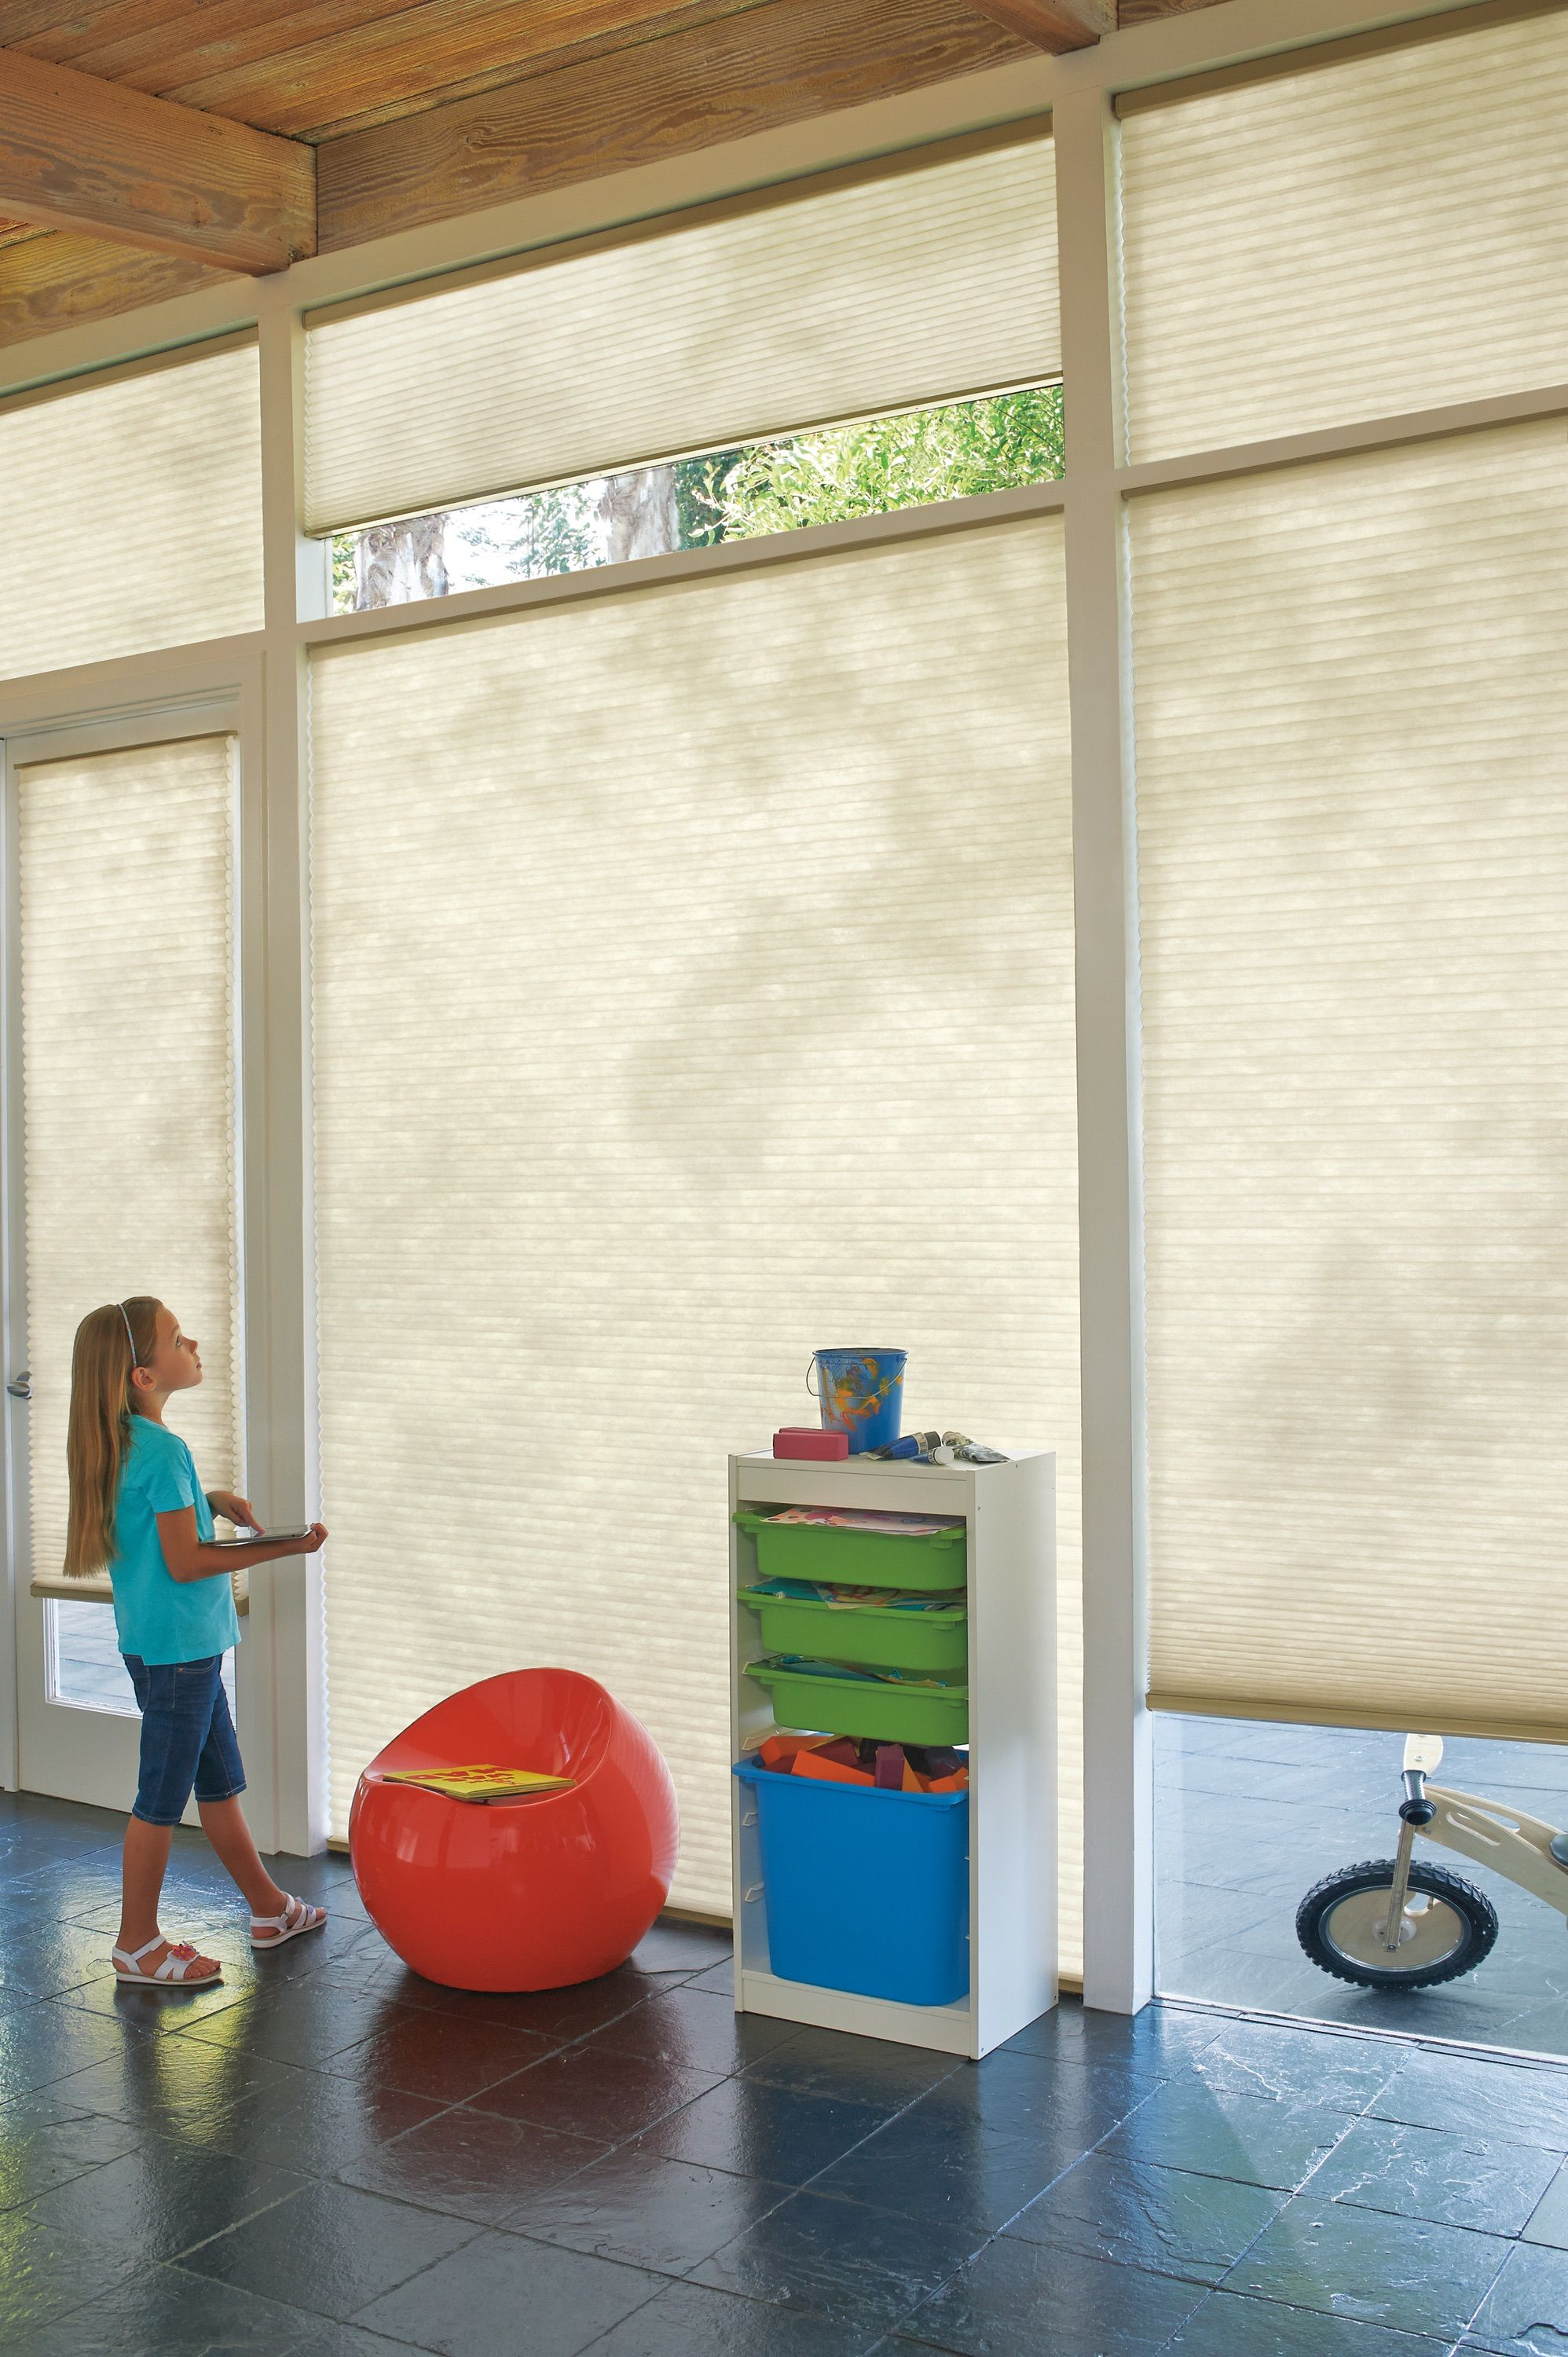 Window Coverings To Keep Heat Out Cellular Shades Are The Most Insulating Shades On The Market Keep